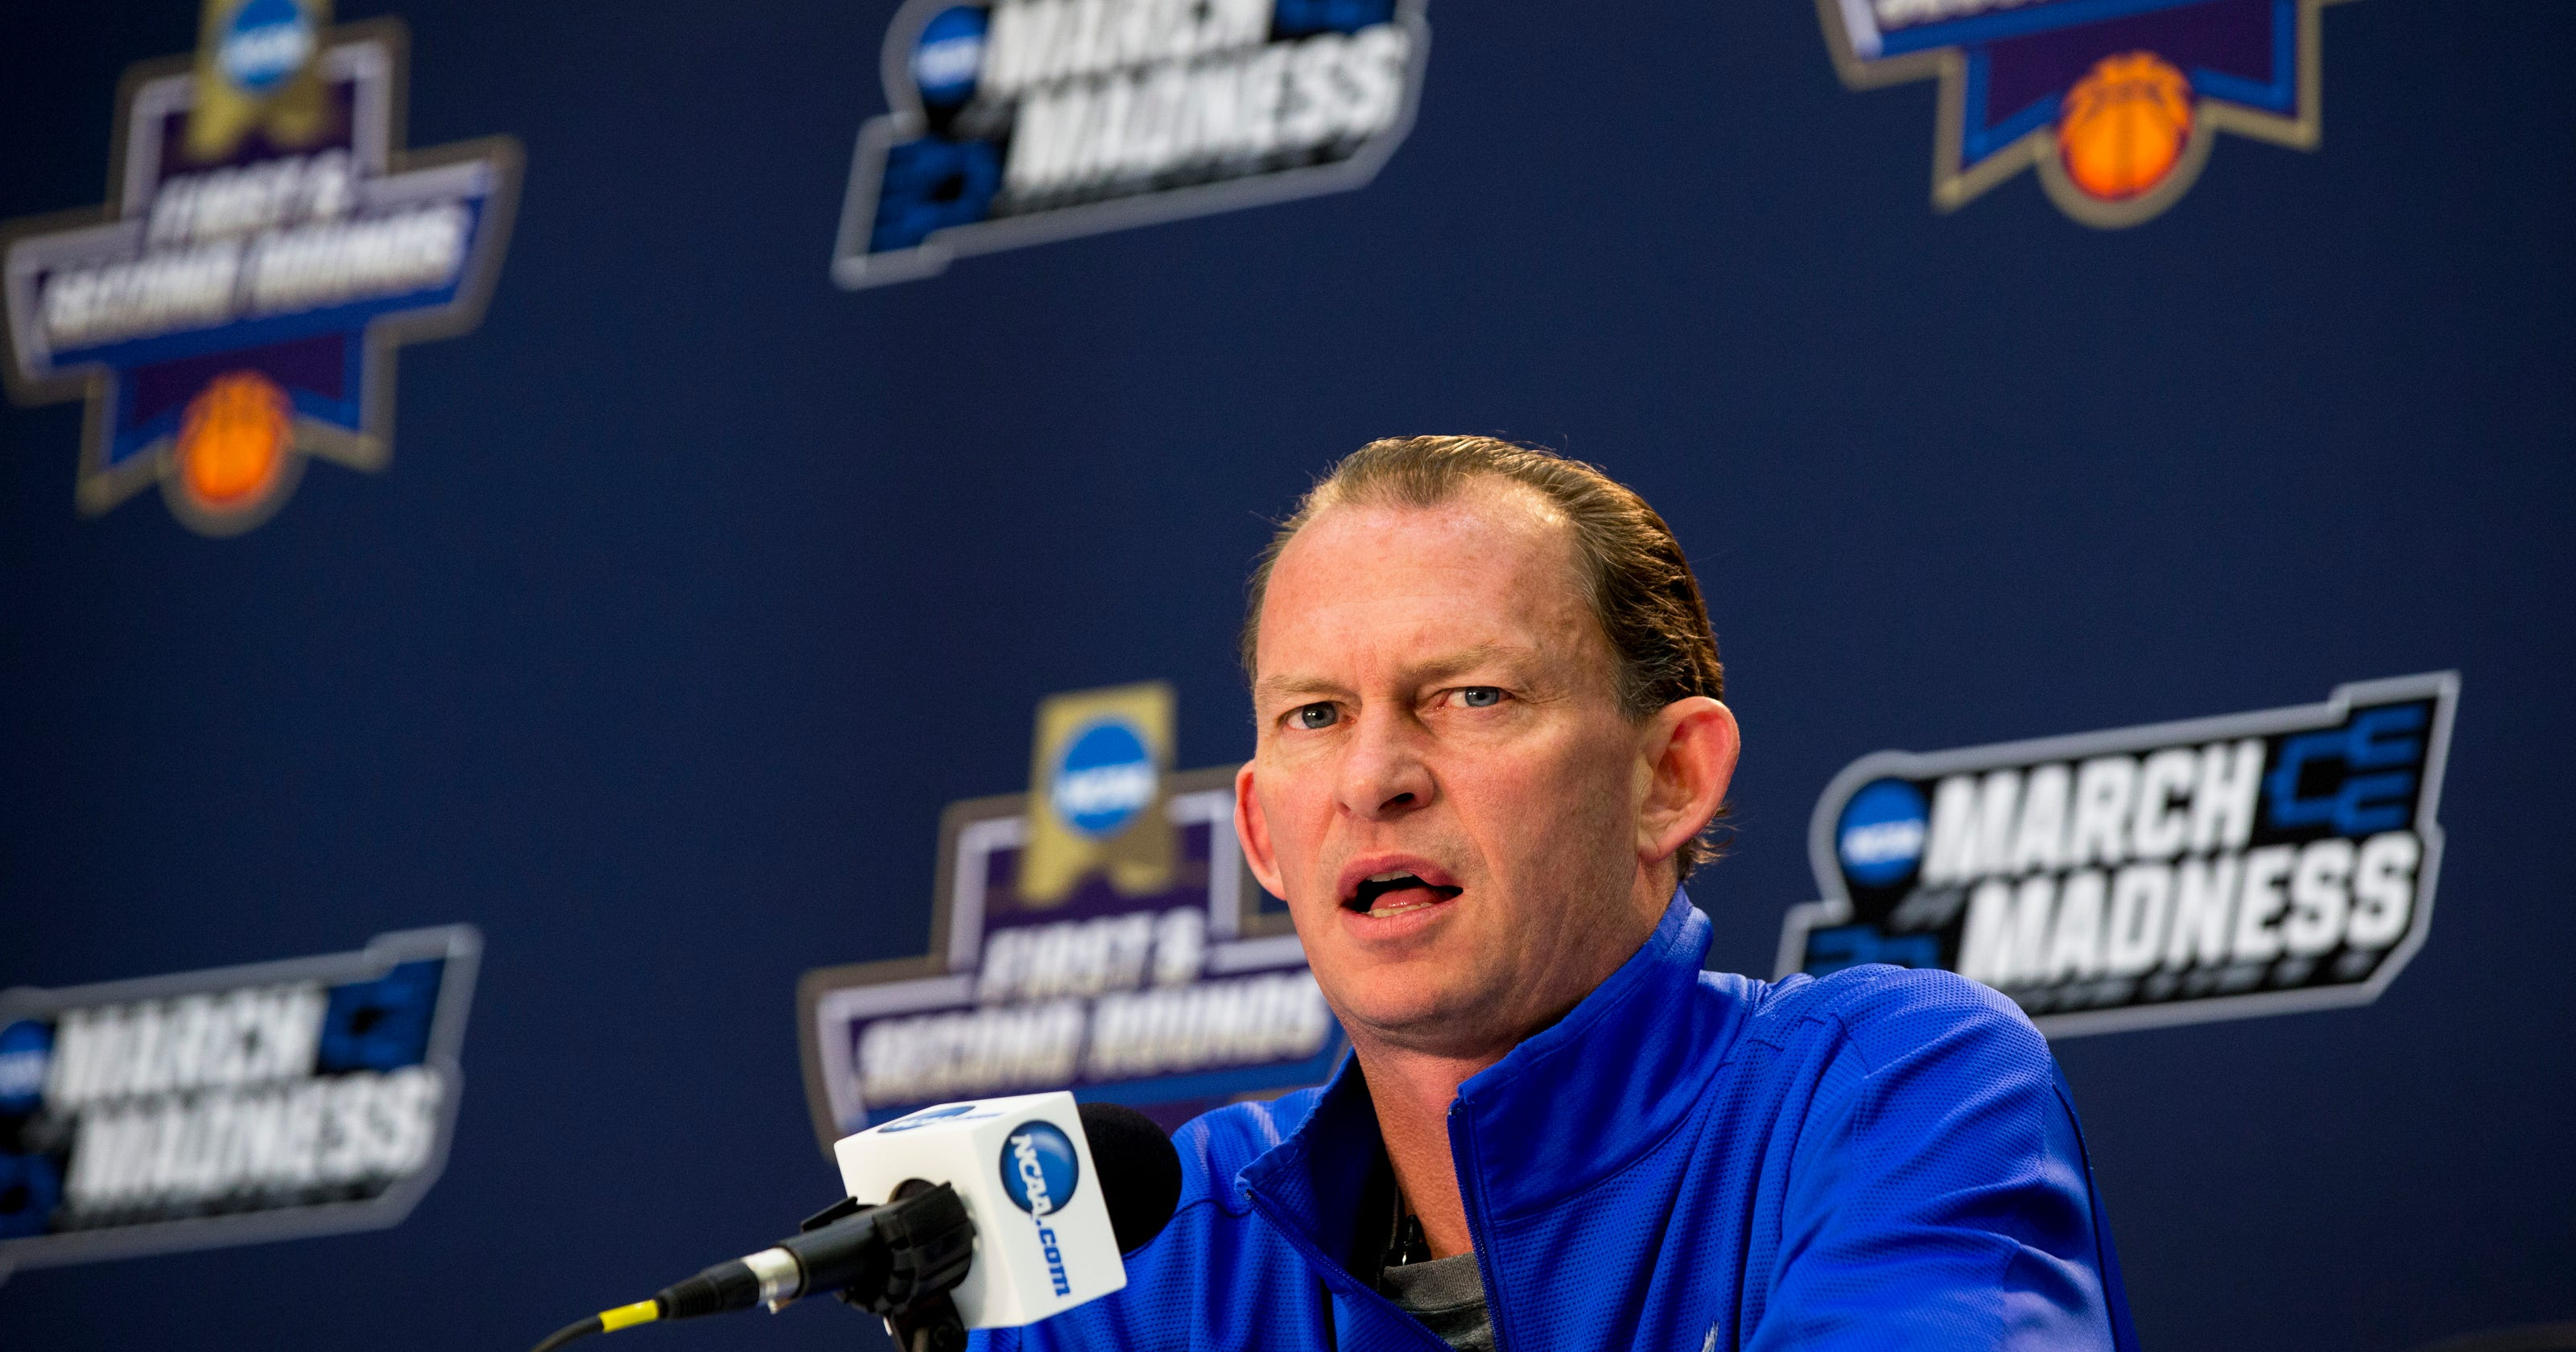 College basketball: FGCU men add four more games to tough